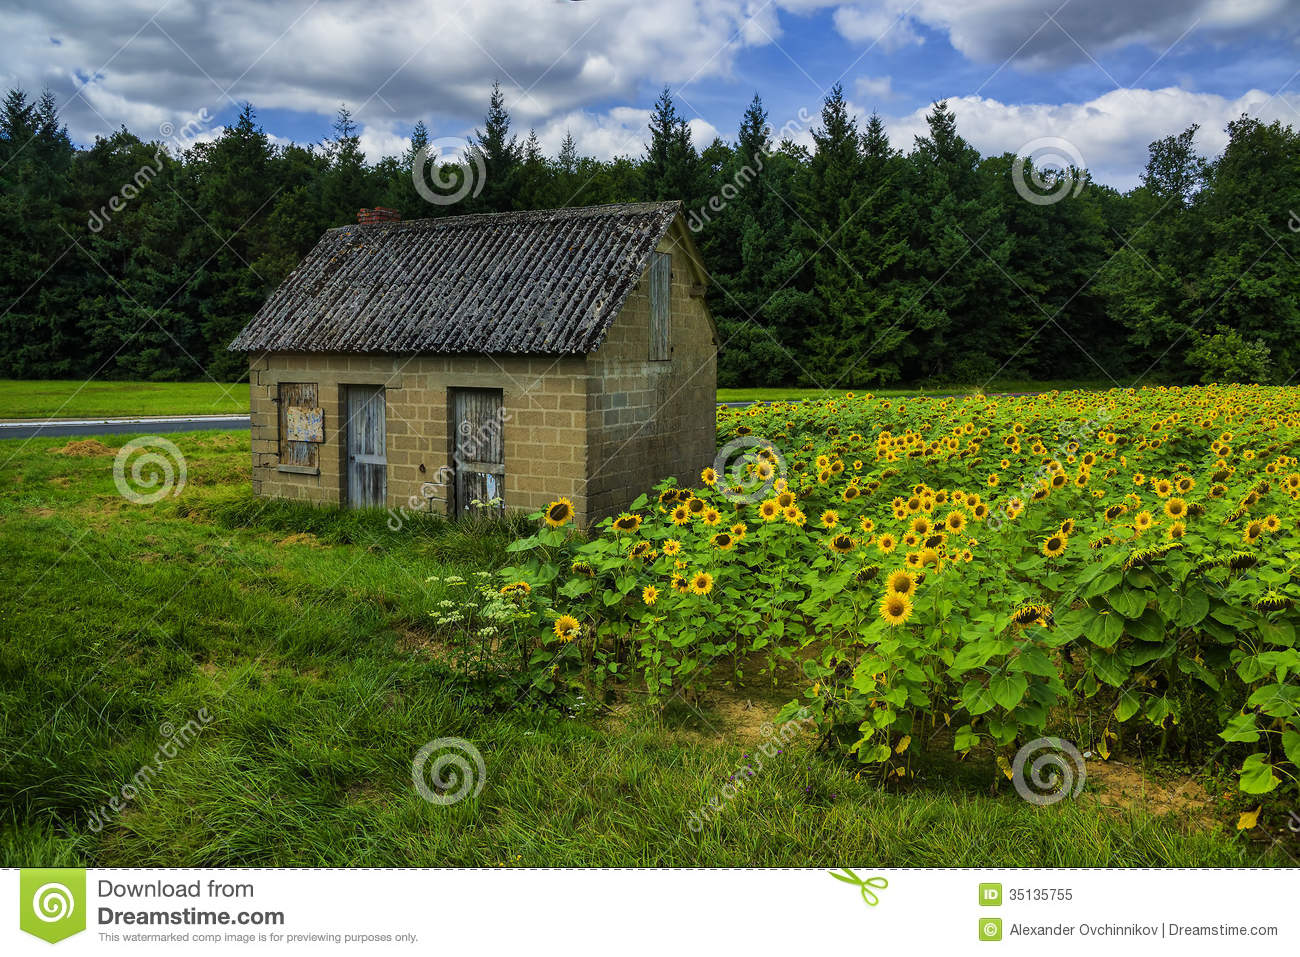 The Old House In The Field Of Sunflowers Stock Image ...